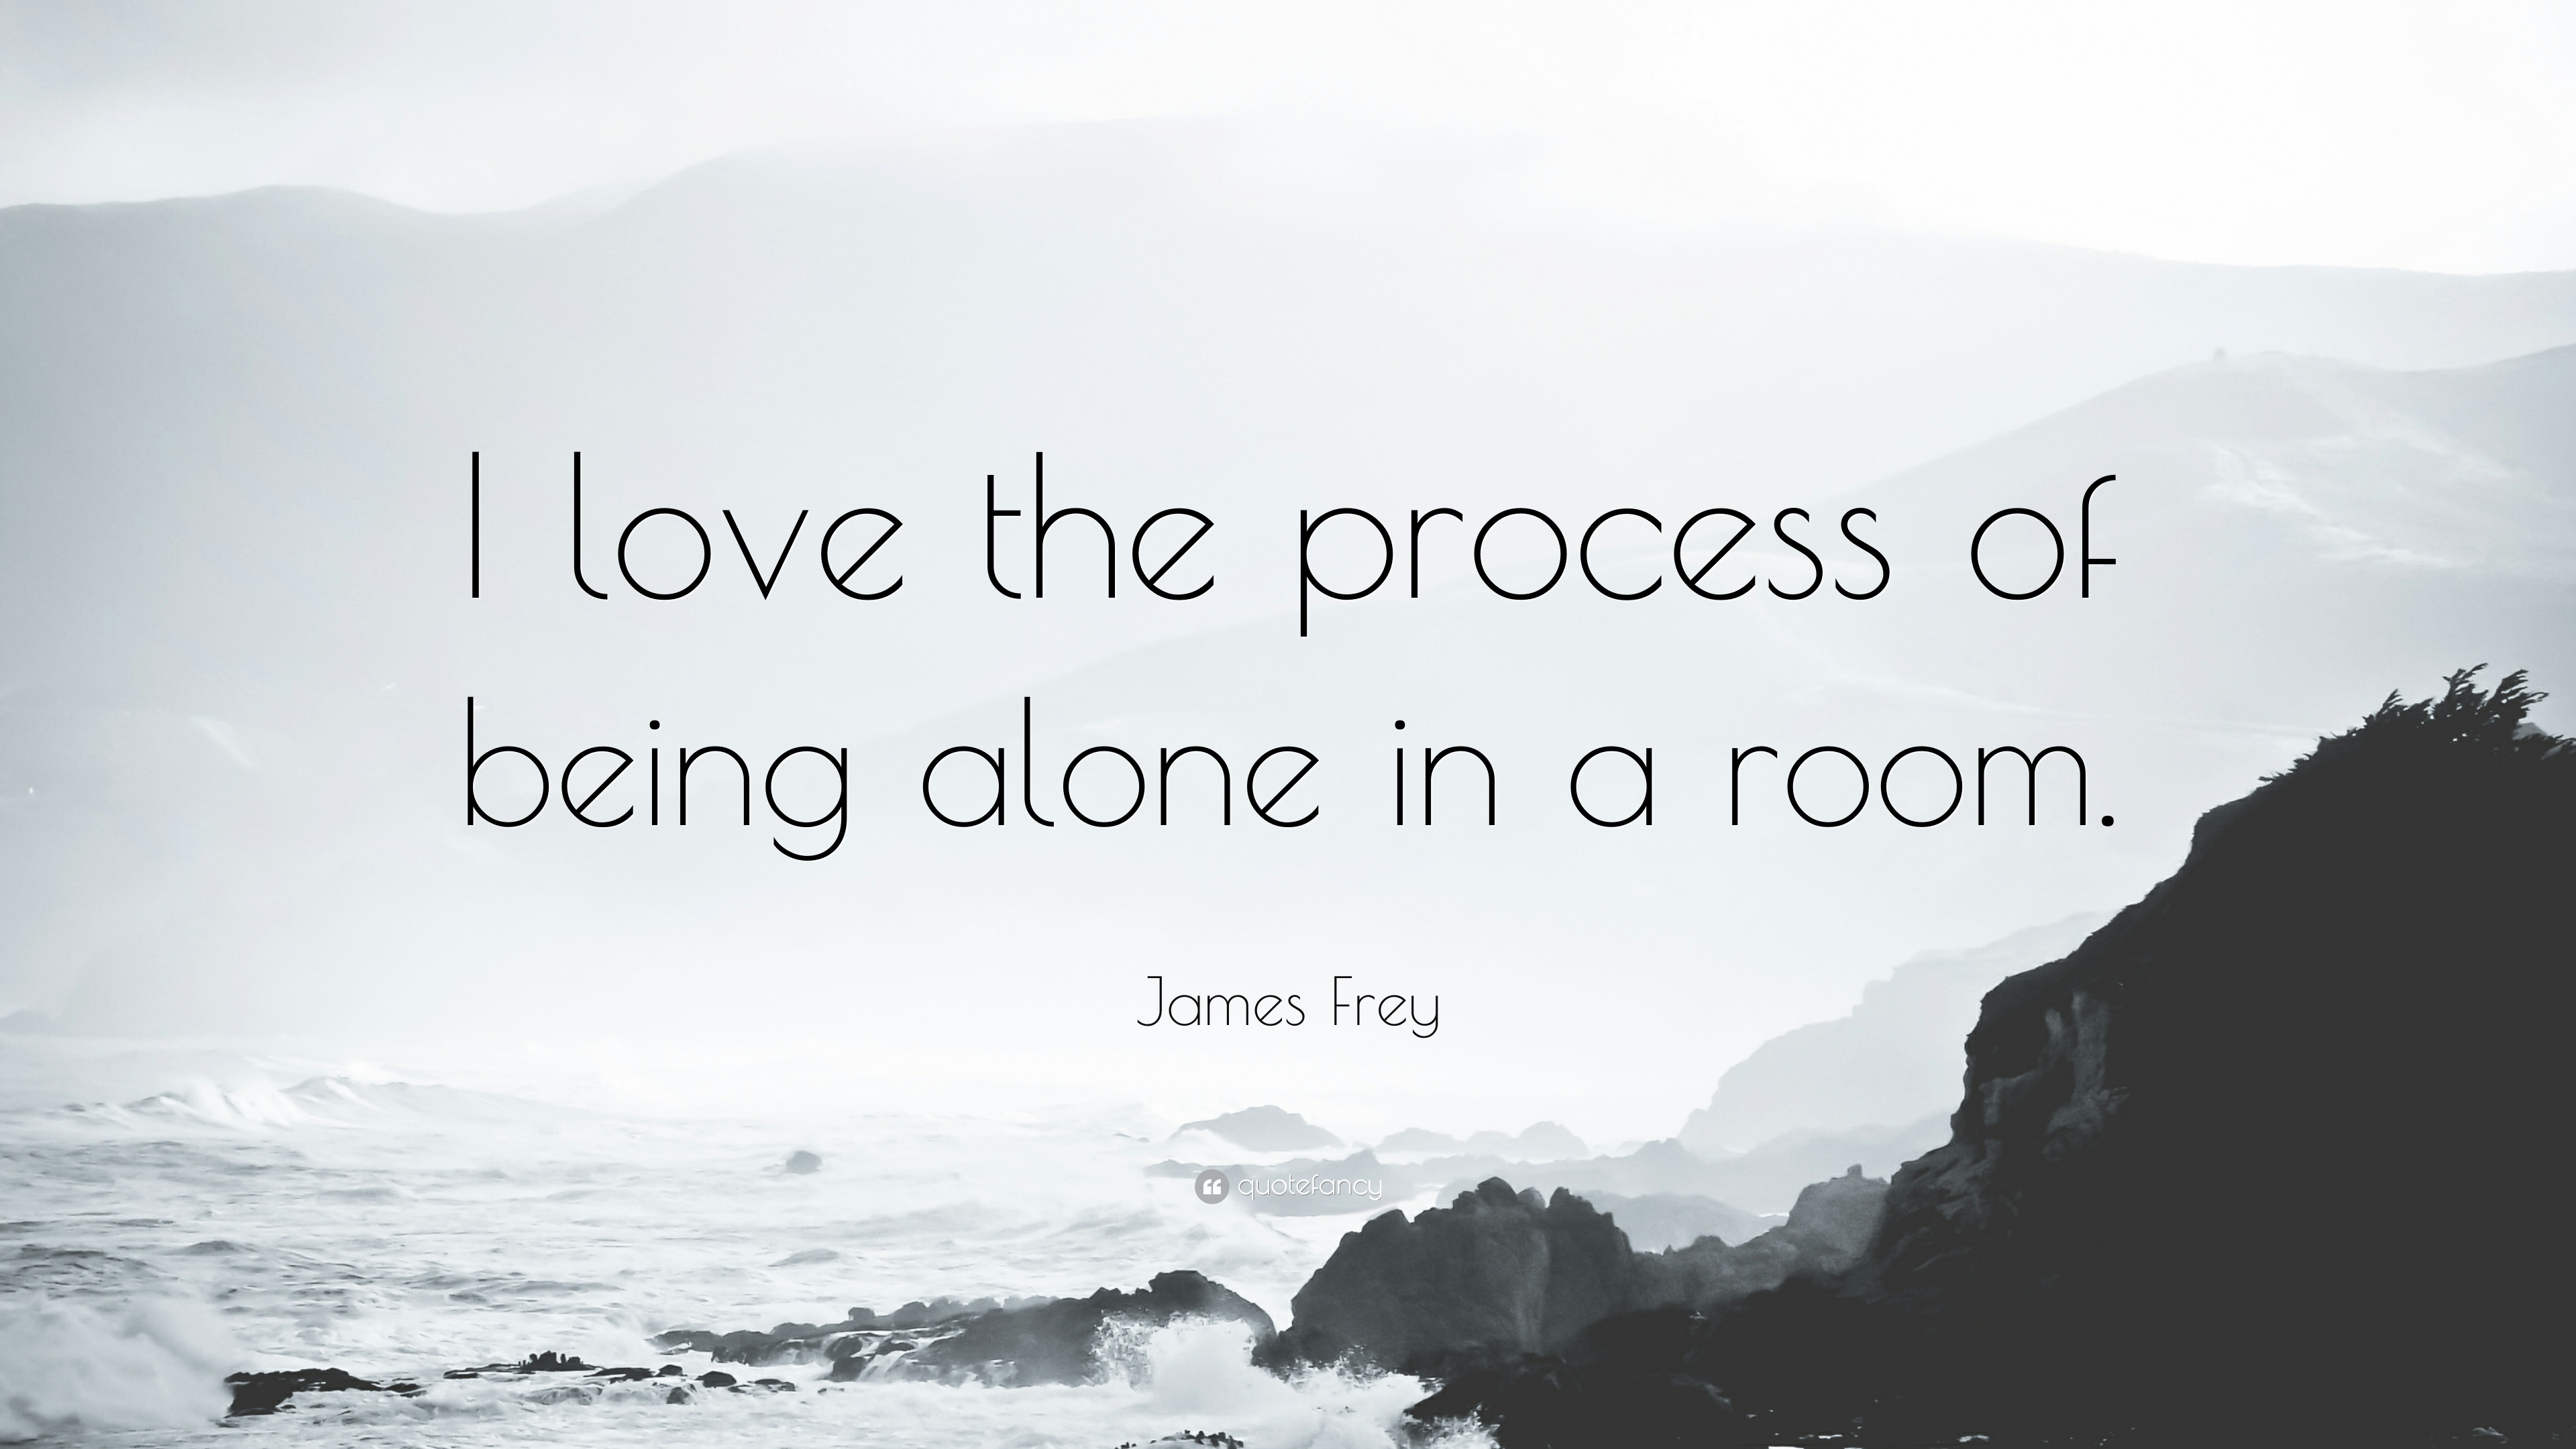 James frey quote i love the process of being alone in a room